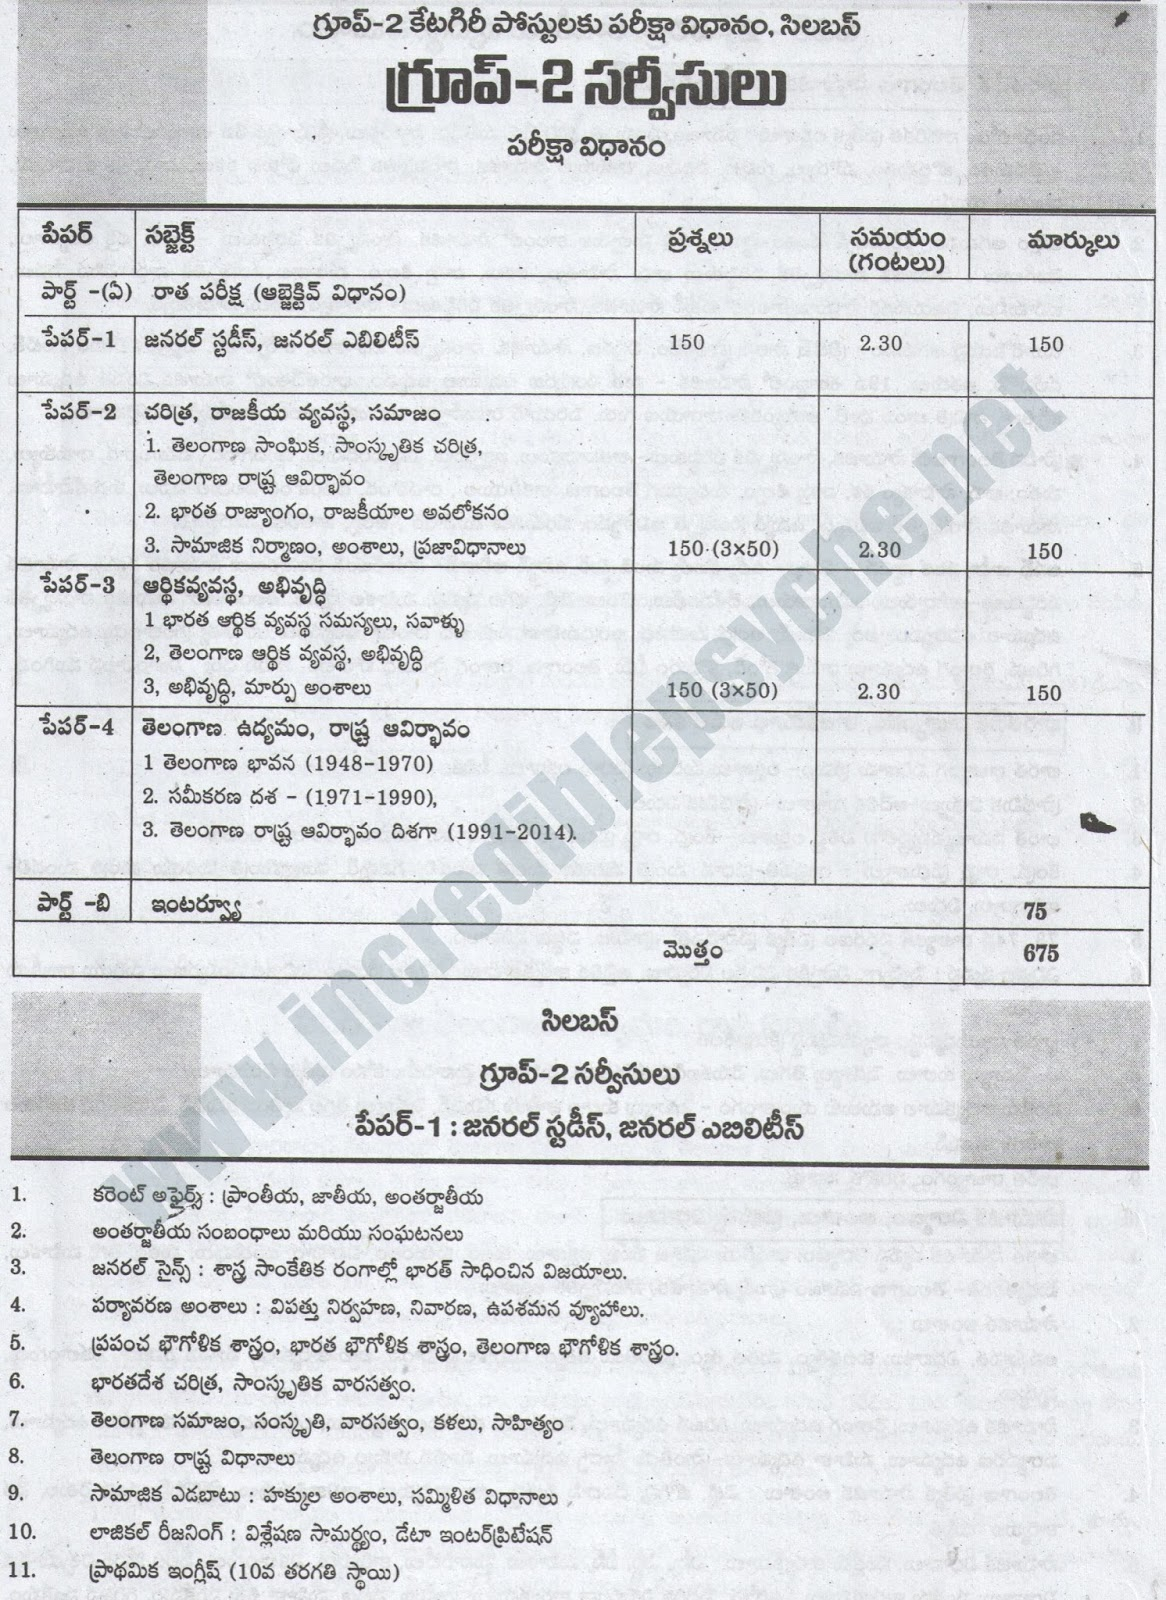 telangana tspsc group 2 exam syllabus in telugu with scheme of exam pattern detailed pattern 1